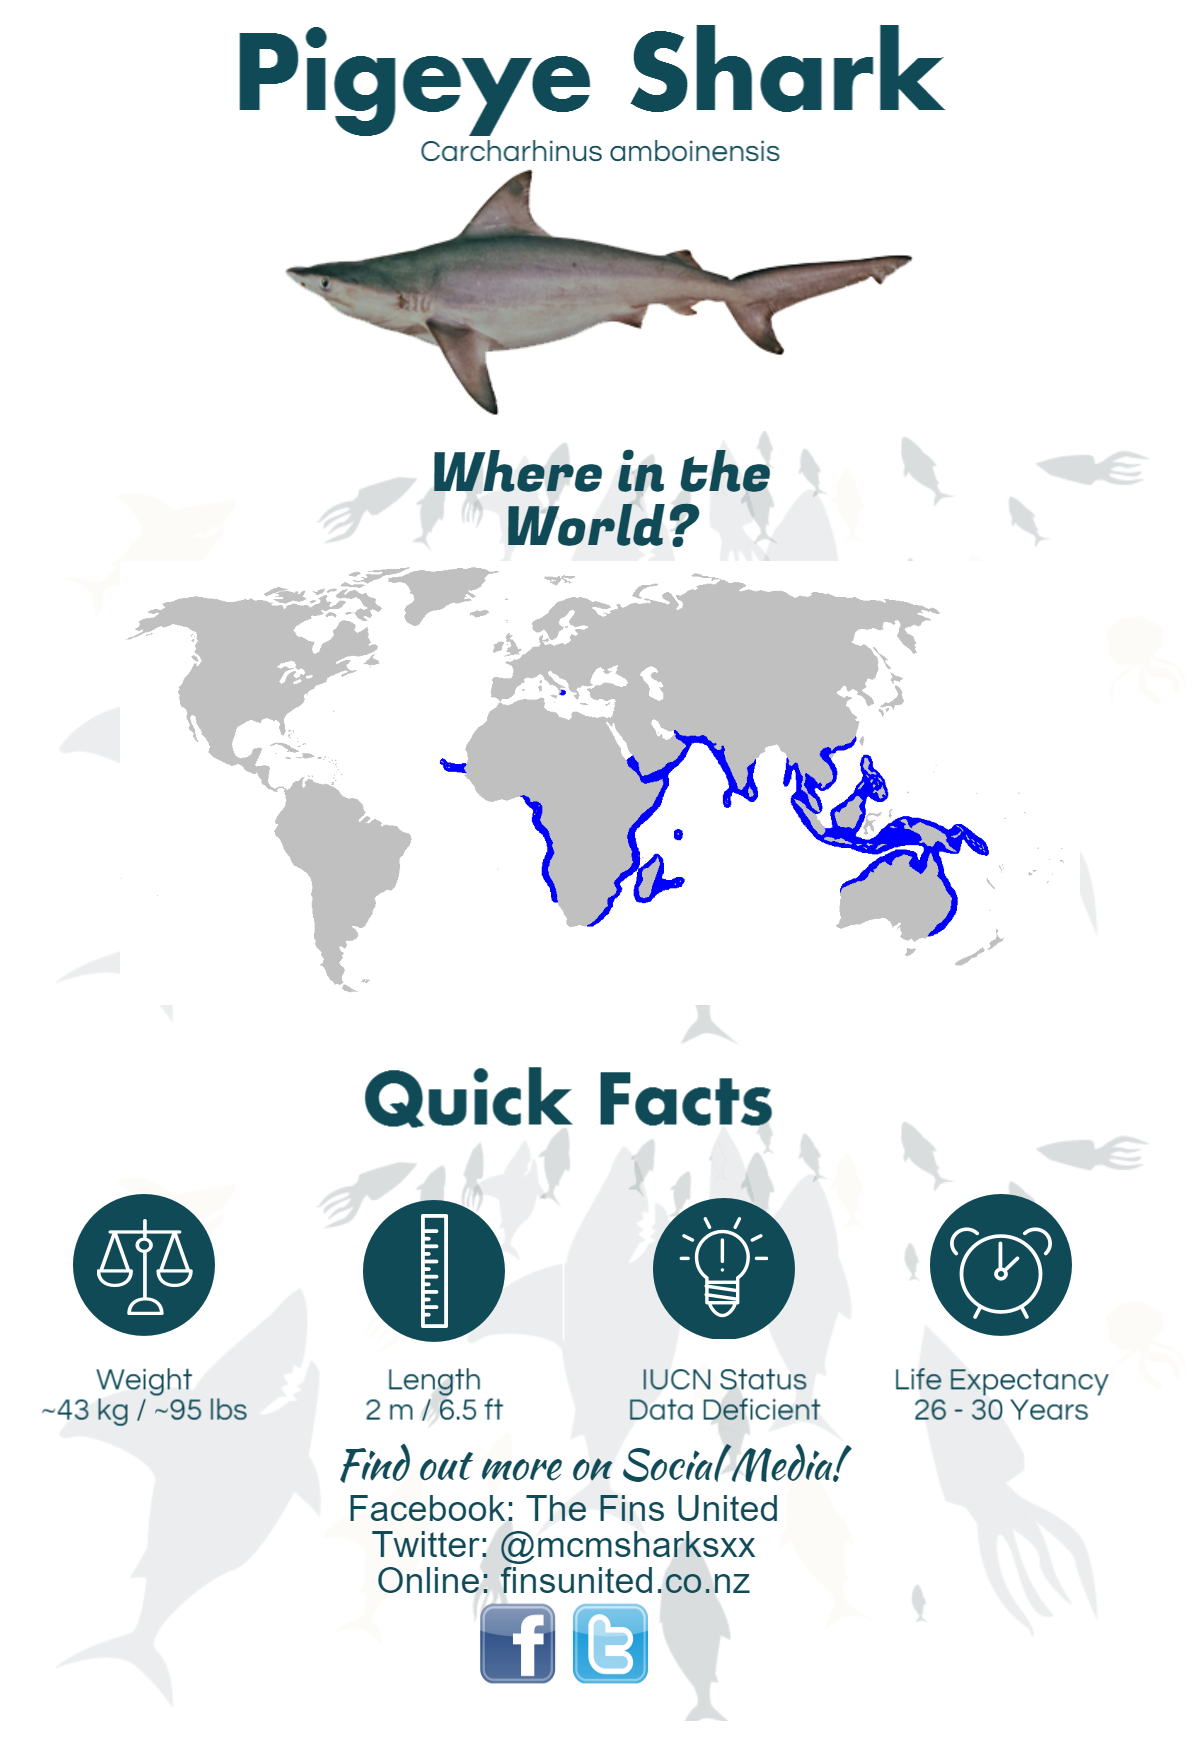 Learn More About The Pigeye Shark With The Fins United